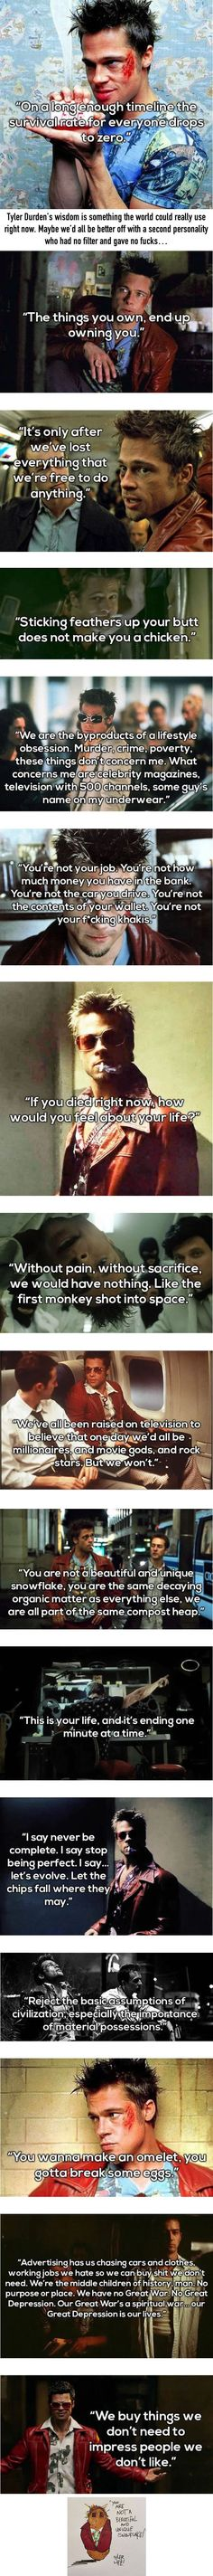 Tyler Durden Is The Life Coach We All Need Right Bow